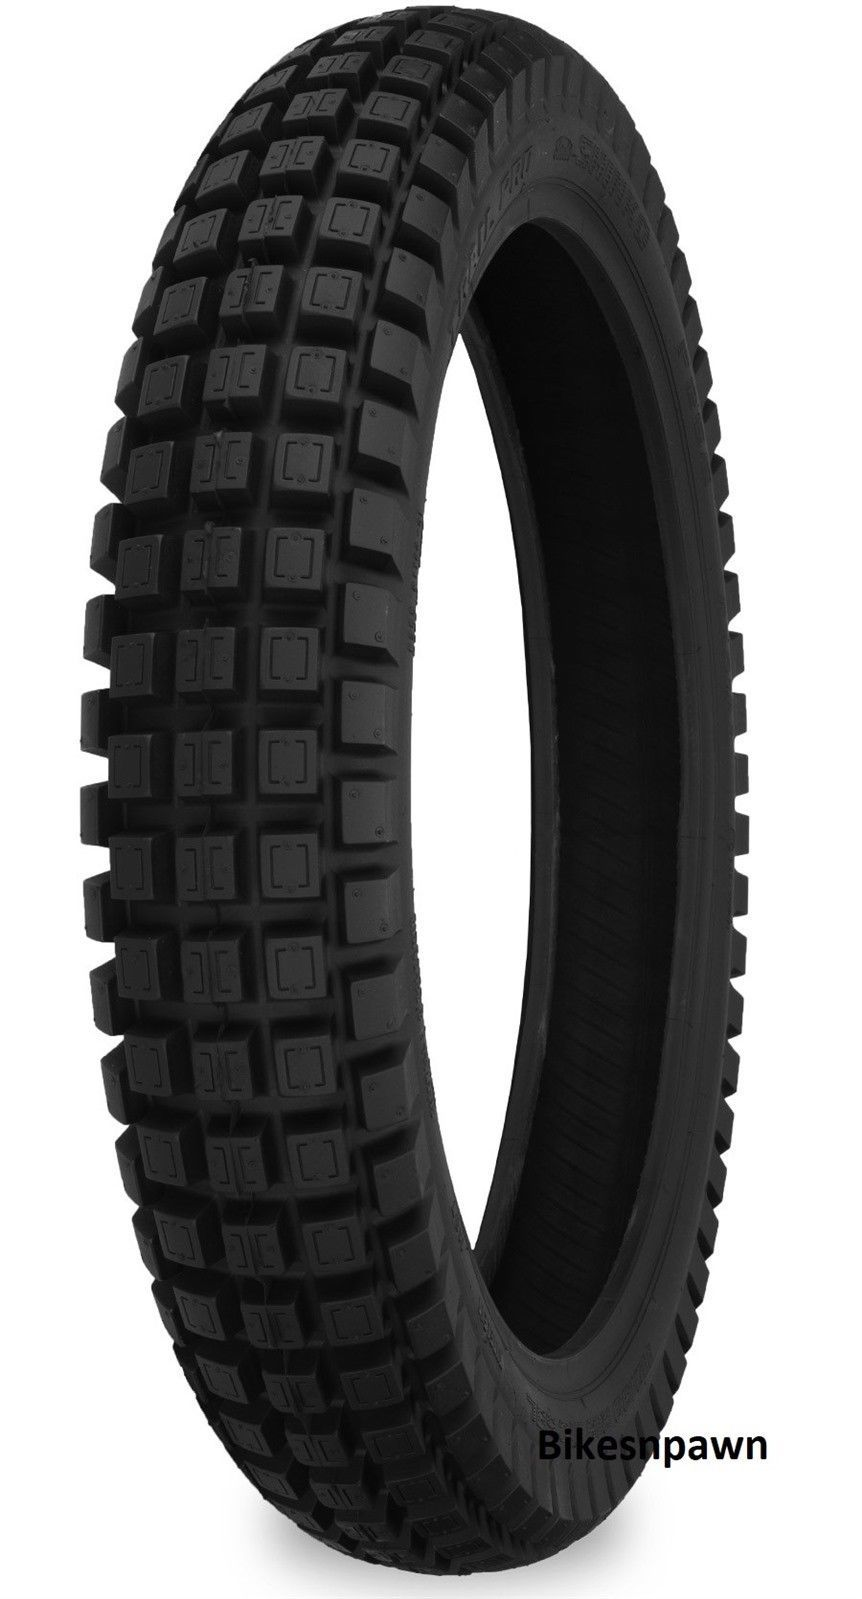 New Trail Pro 255 120/80R-19 Rear Trials Soft Radial DOT Motorcycle Tire M 65